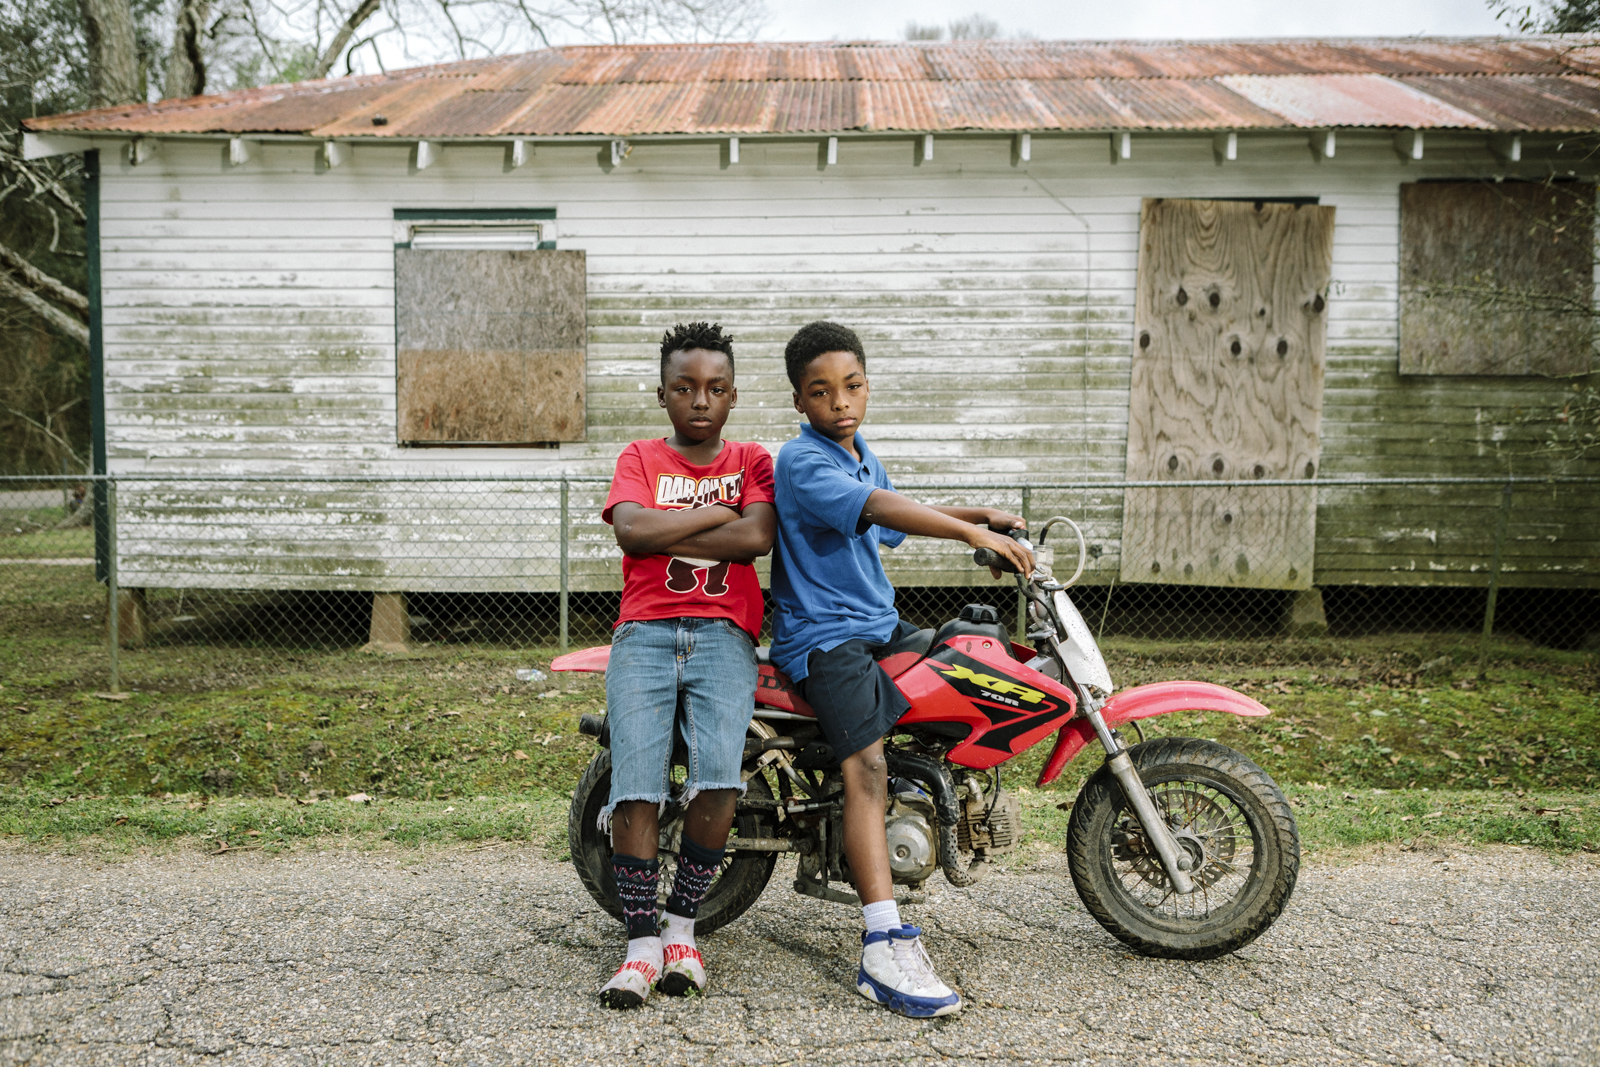 Reserve, LA - Feb 20, 2017 - Local residents Jaden James (9, L) and Lance Bovie (9) pause on Robinet Drive, less than a block from the fence line of the Dupont/Denka plant. Many of the homes in the area have been vacated as residents have either died or left town.